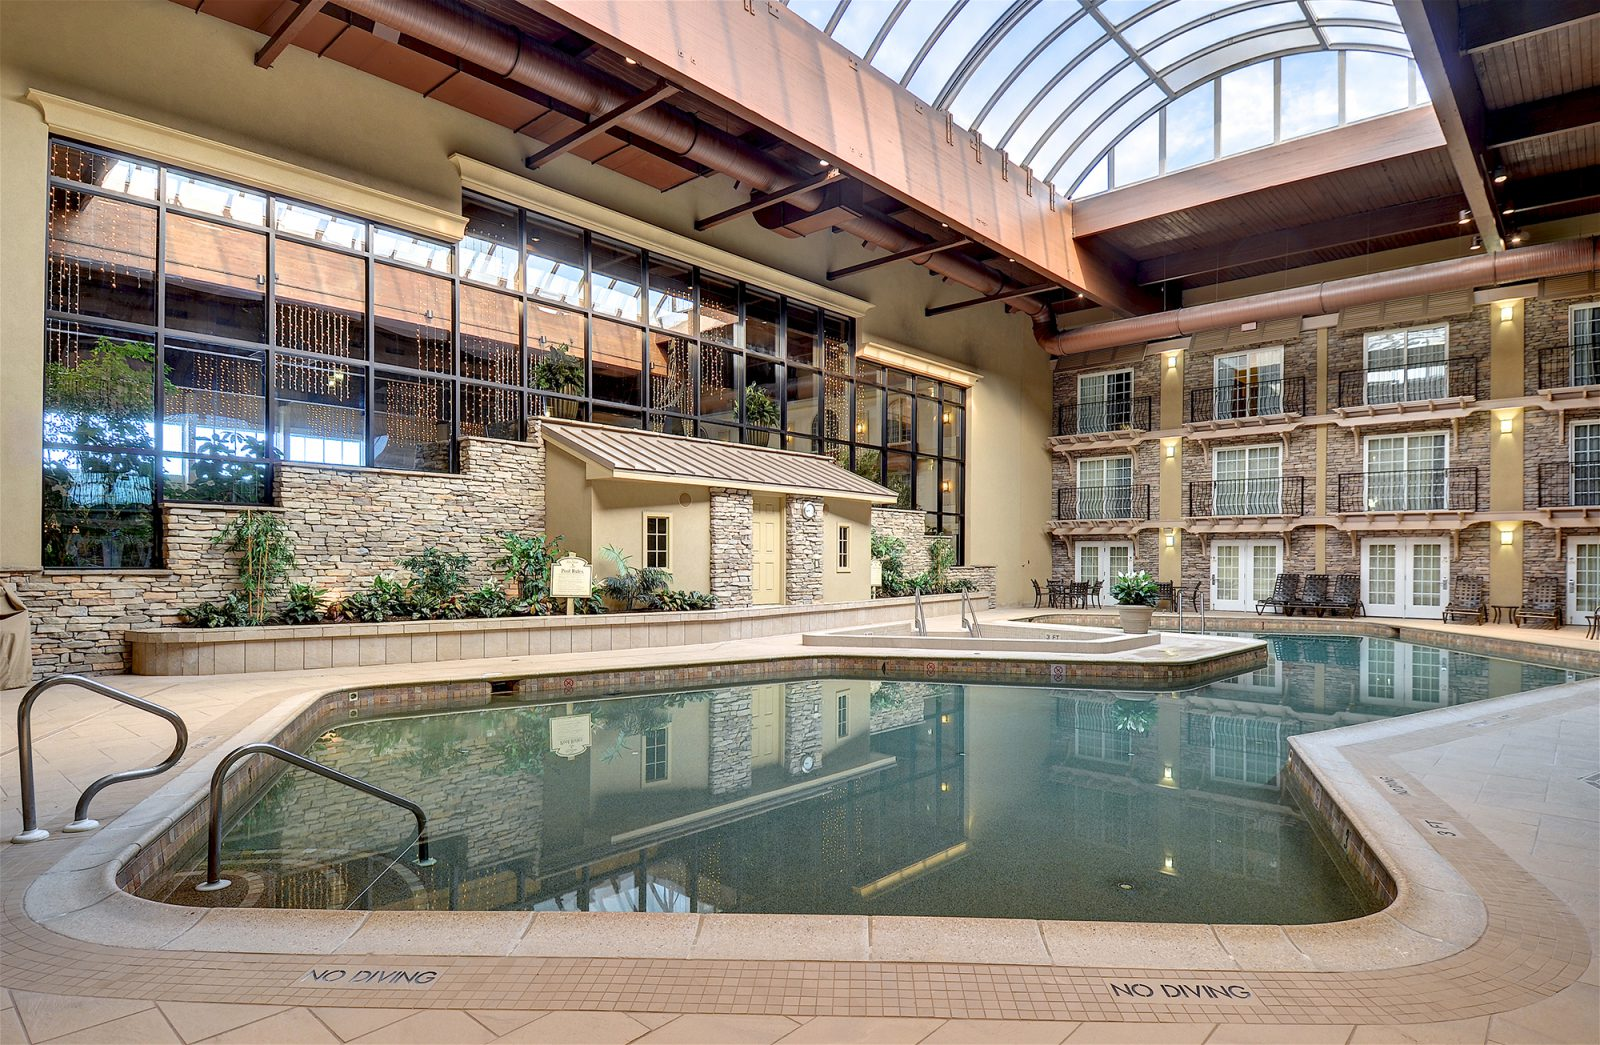 Deal 126 for overnight stay at eden resort in lancaster for Hotels in dallas tx with indoor pool